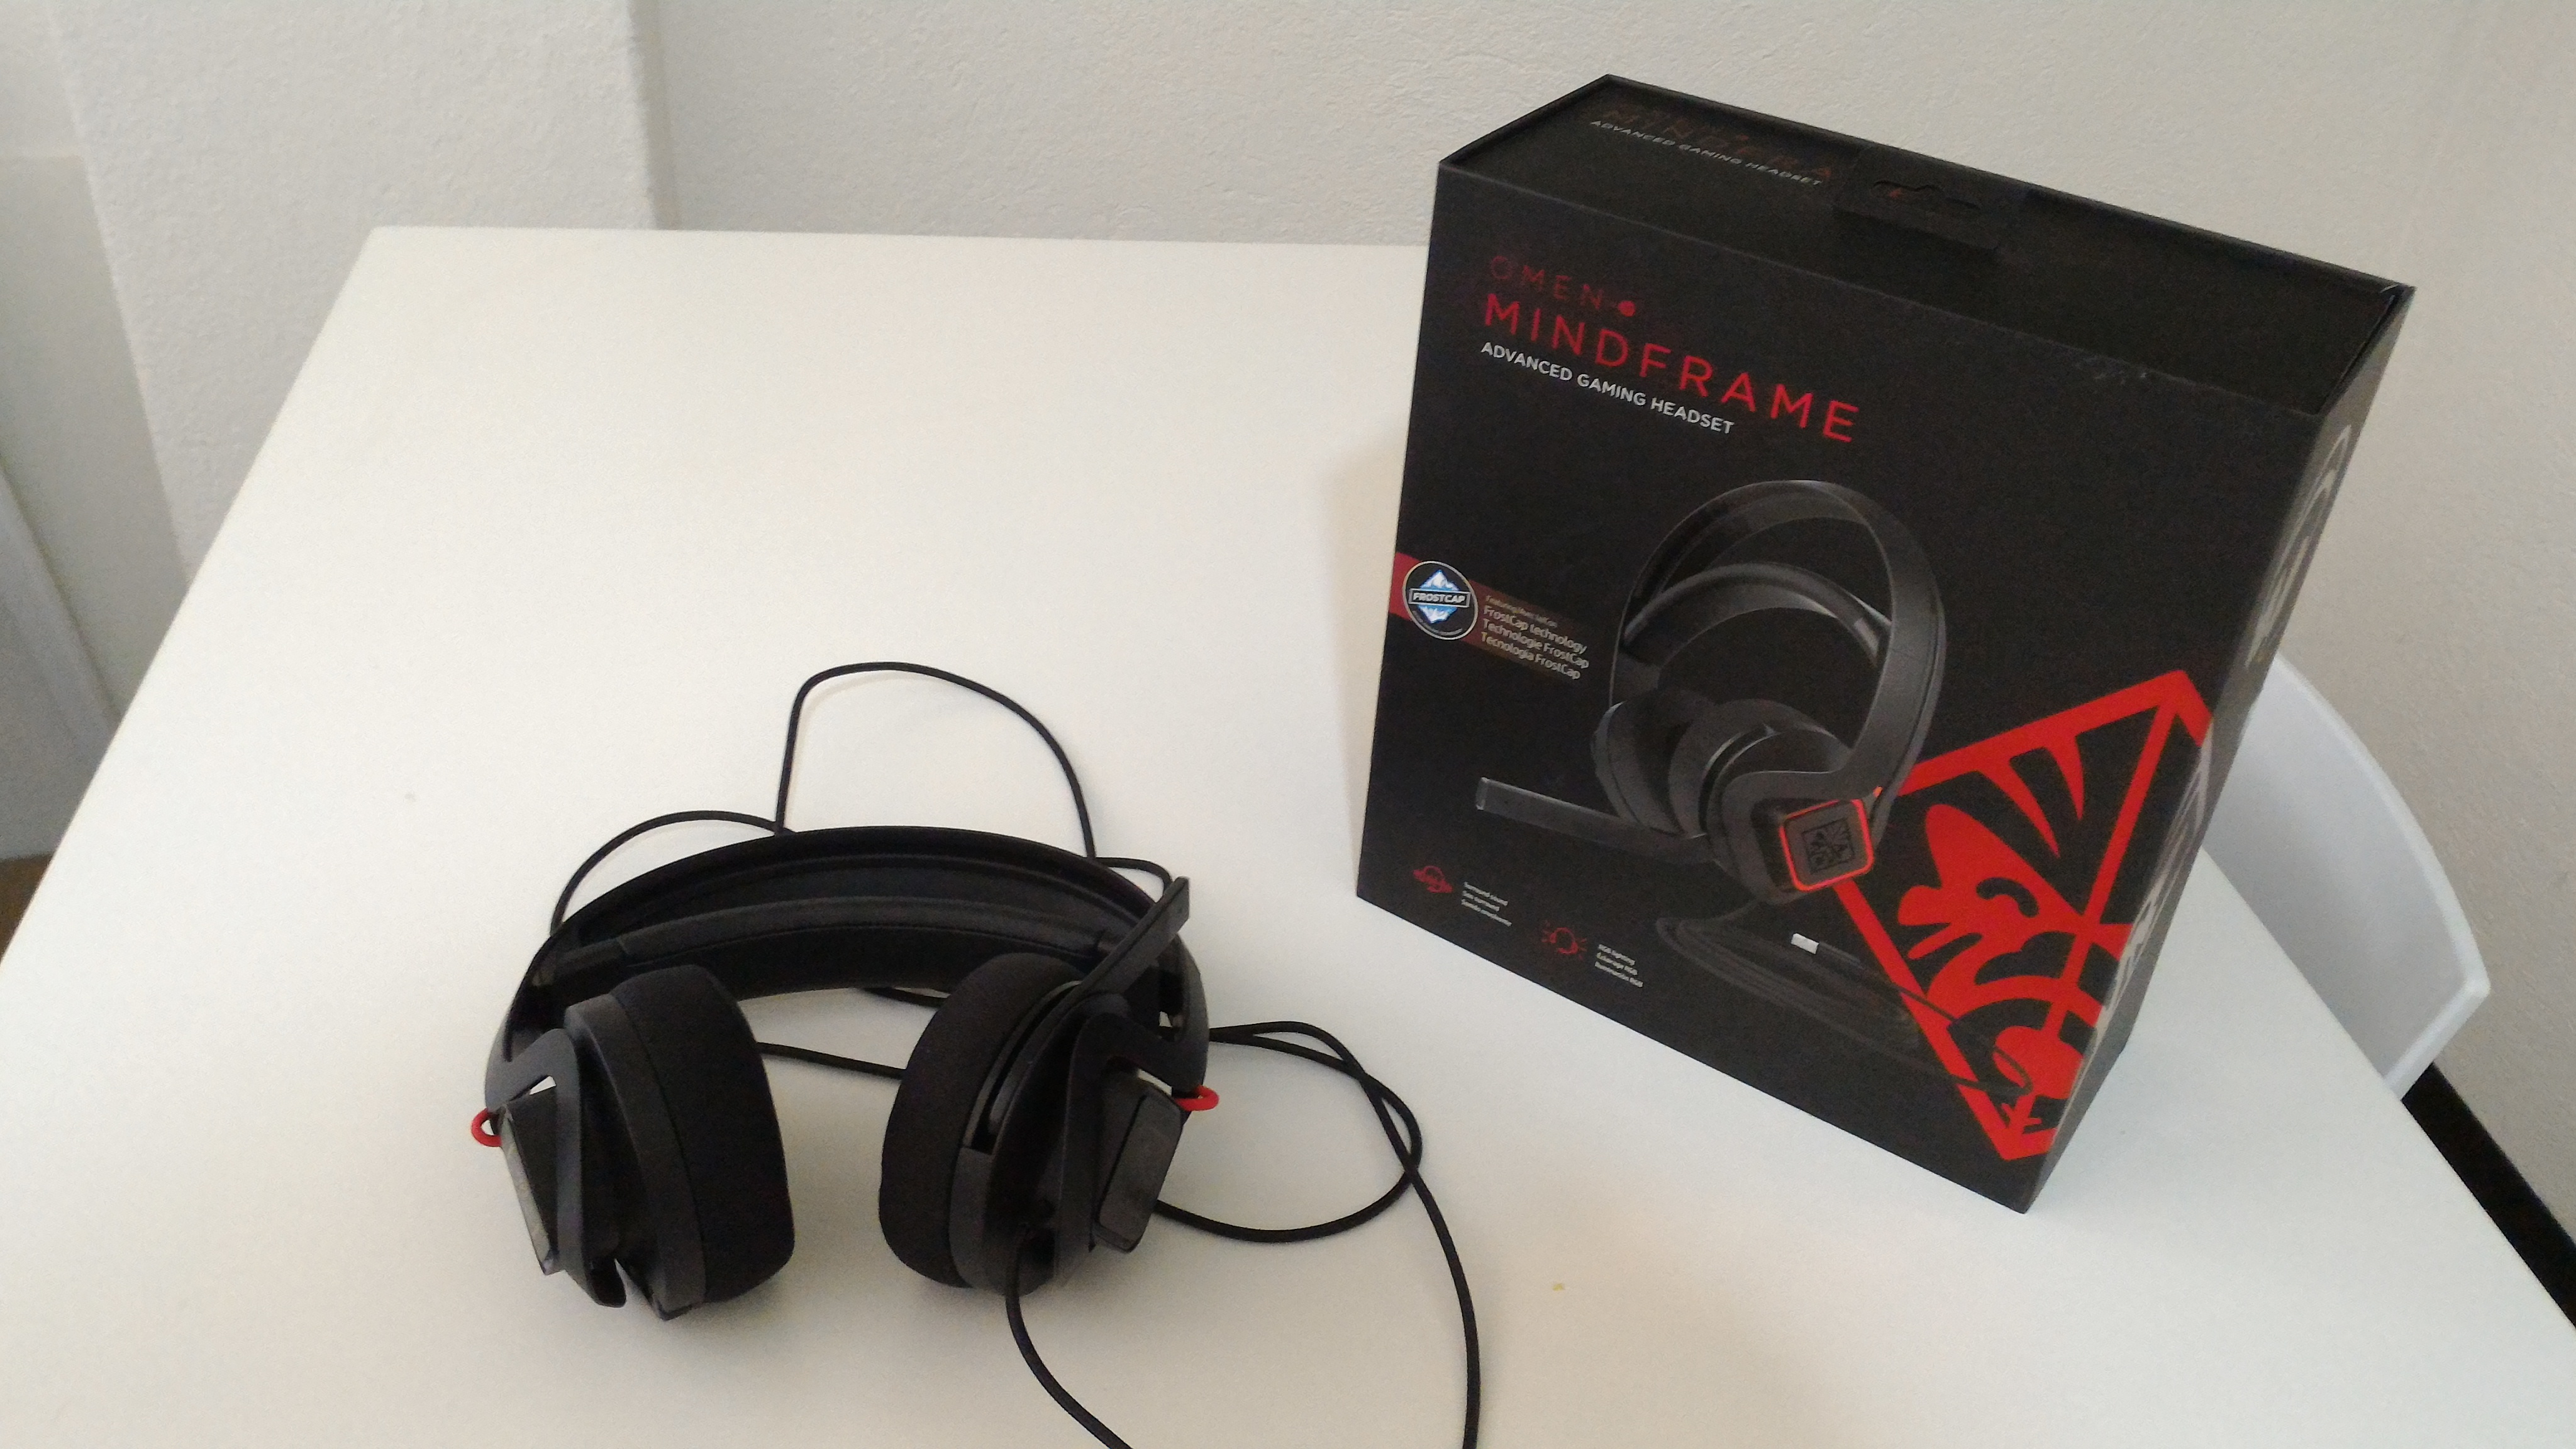 Speciale OMEN by HP Mindframe Headset Cuffia Gaming